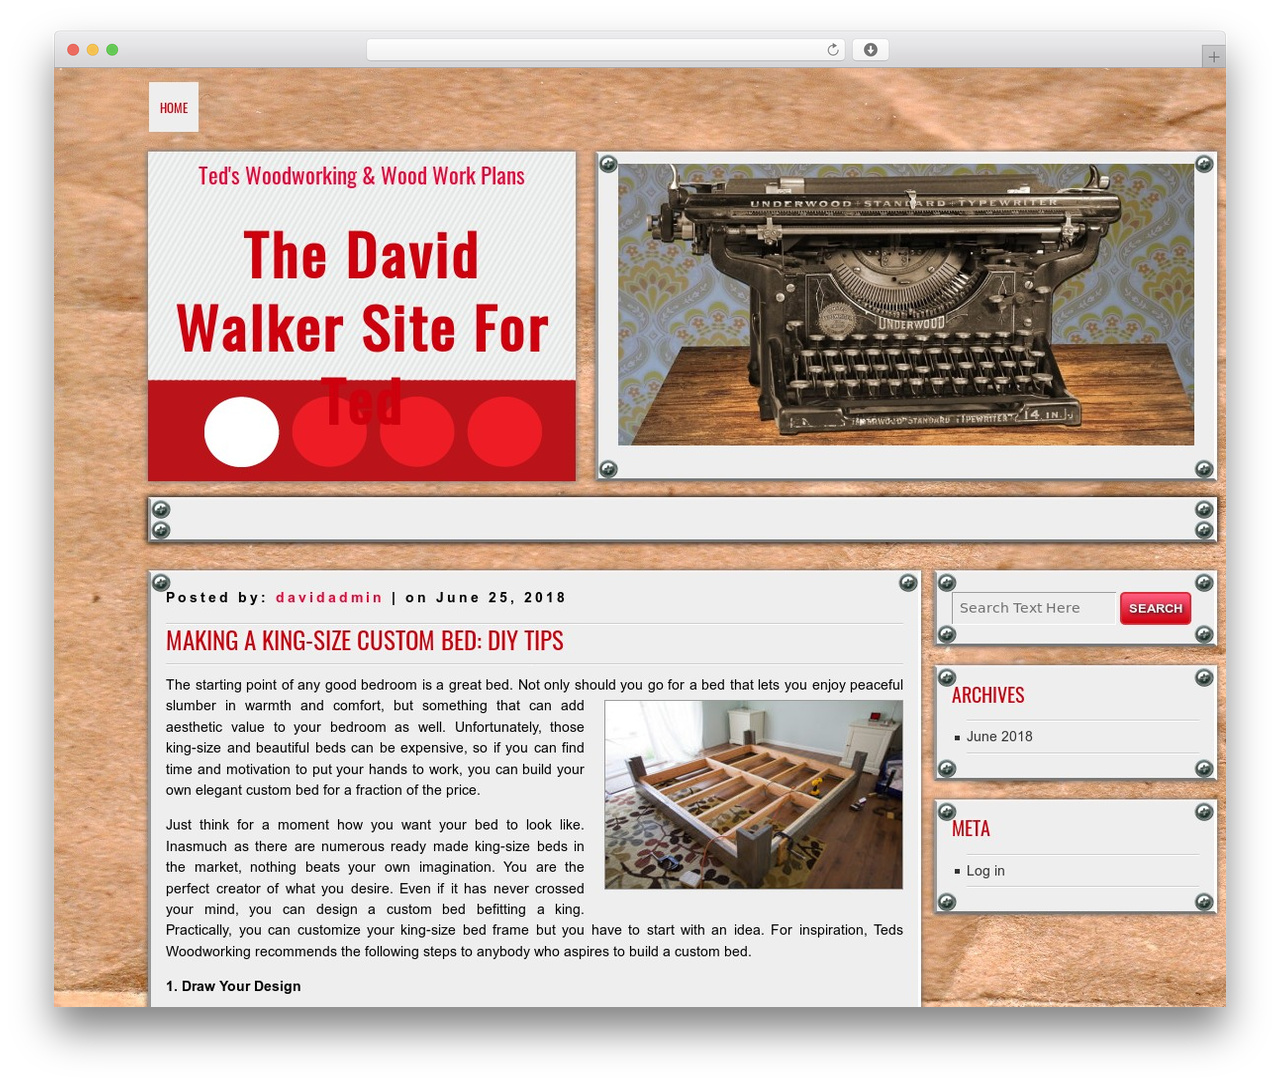 DISCUSSION WordPress template free download - thedavidwalkersite.com